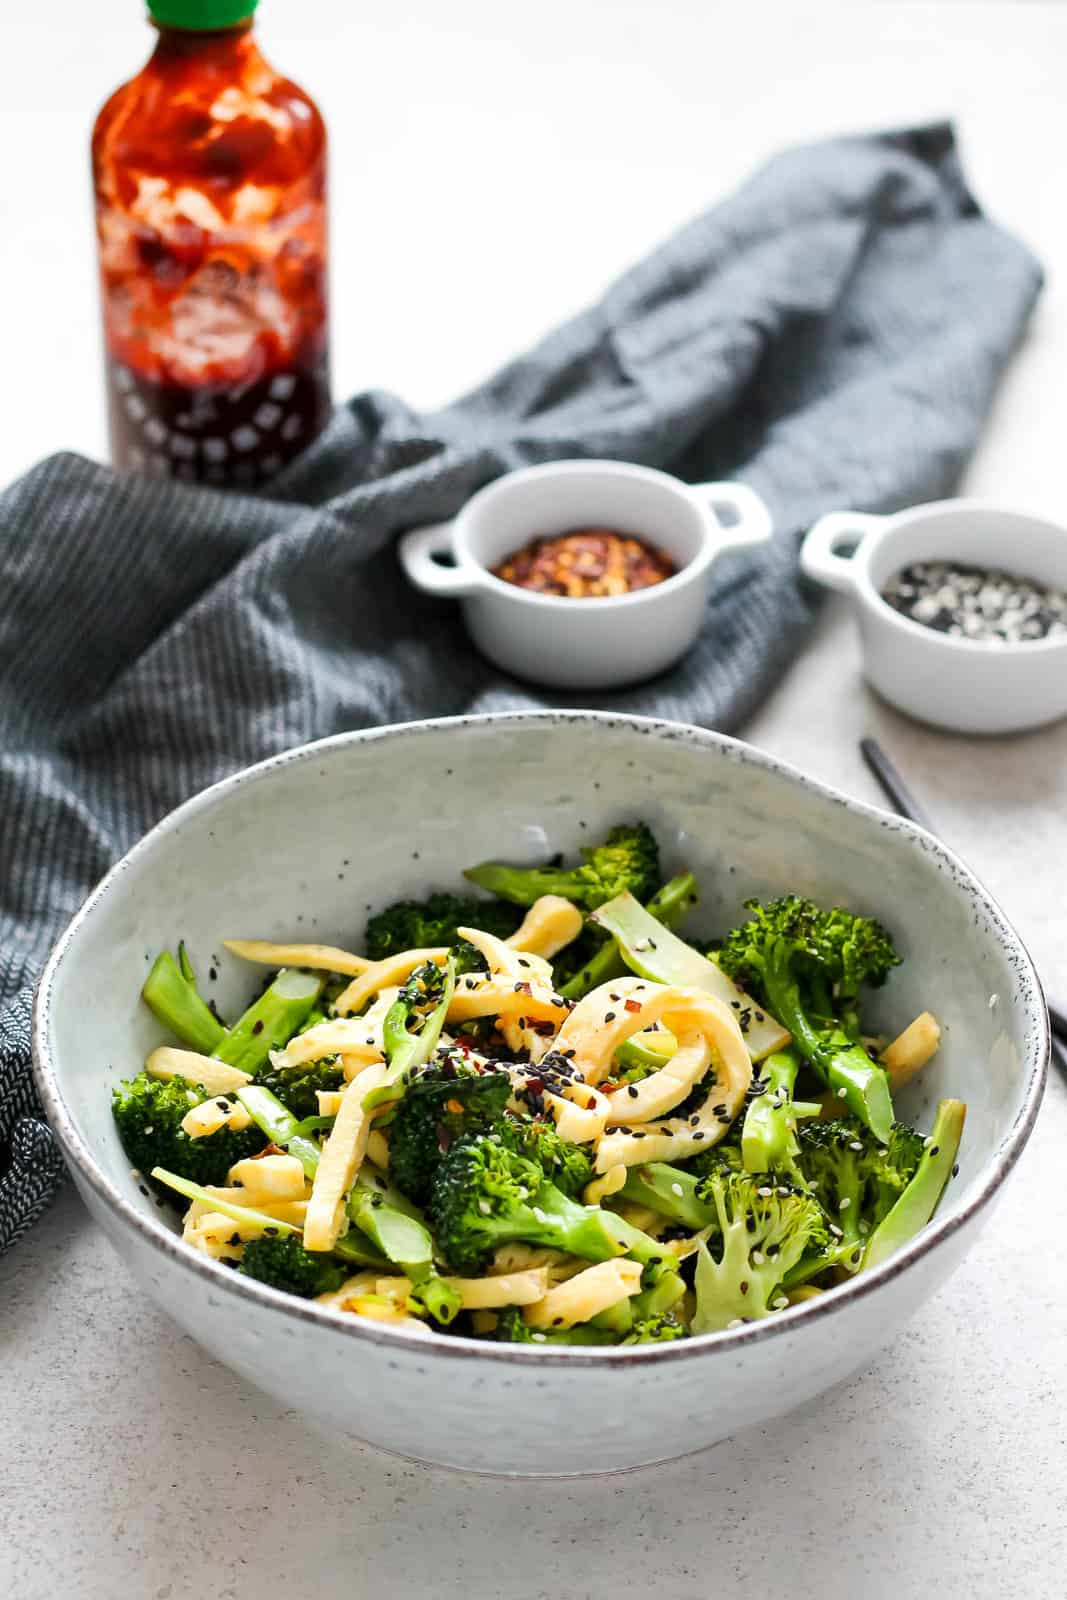 pan-fried broccoli tossed with ribbons of egg in a blue bowl